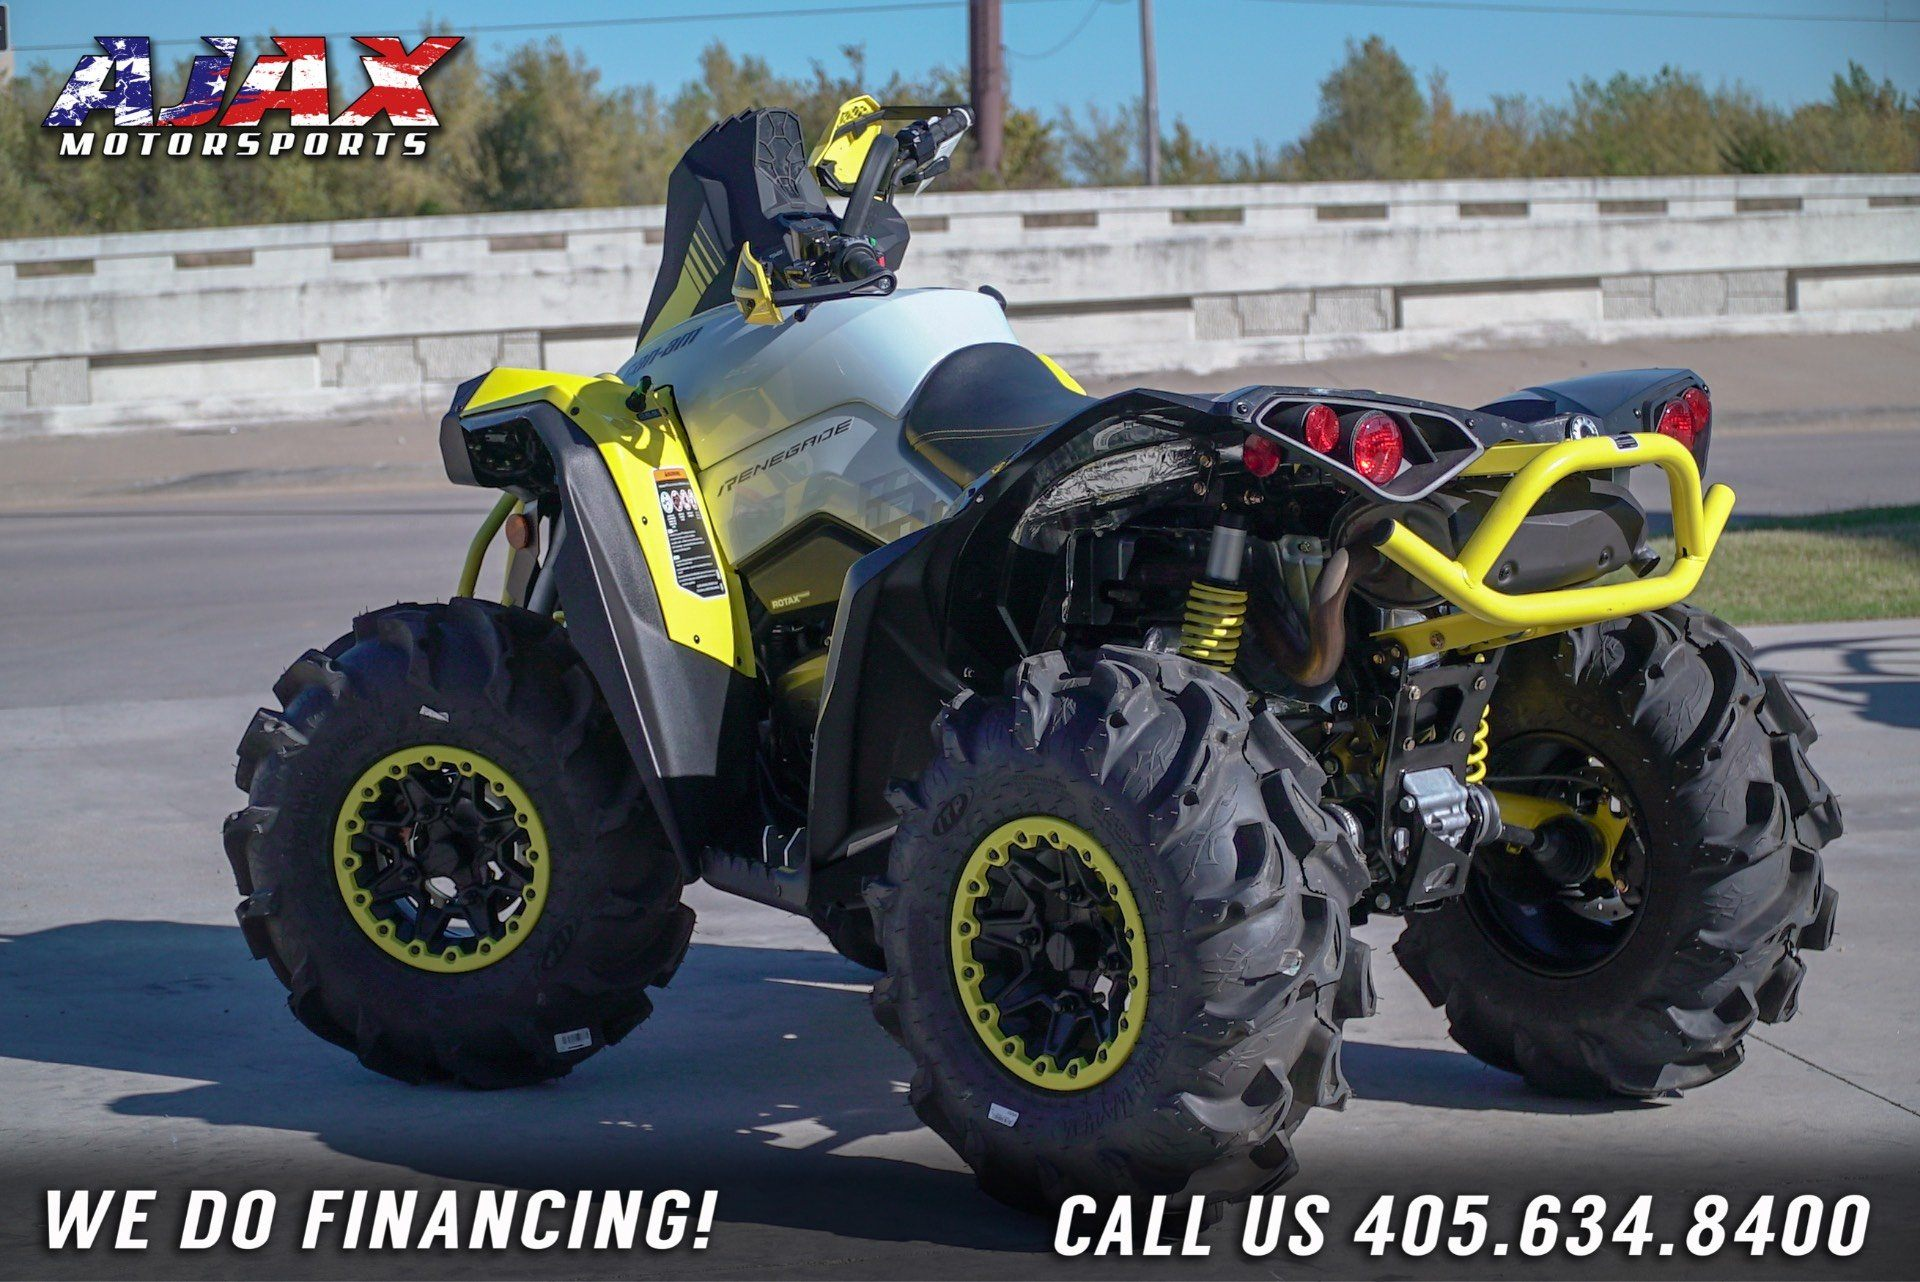 2020 Can-Am Renegade X MR 570 in Oklahoma City, Oklahoma - Photo 11